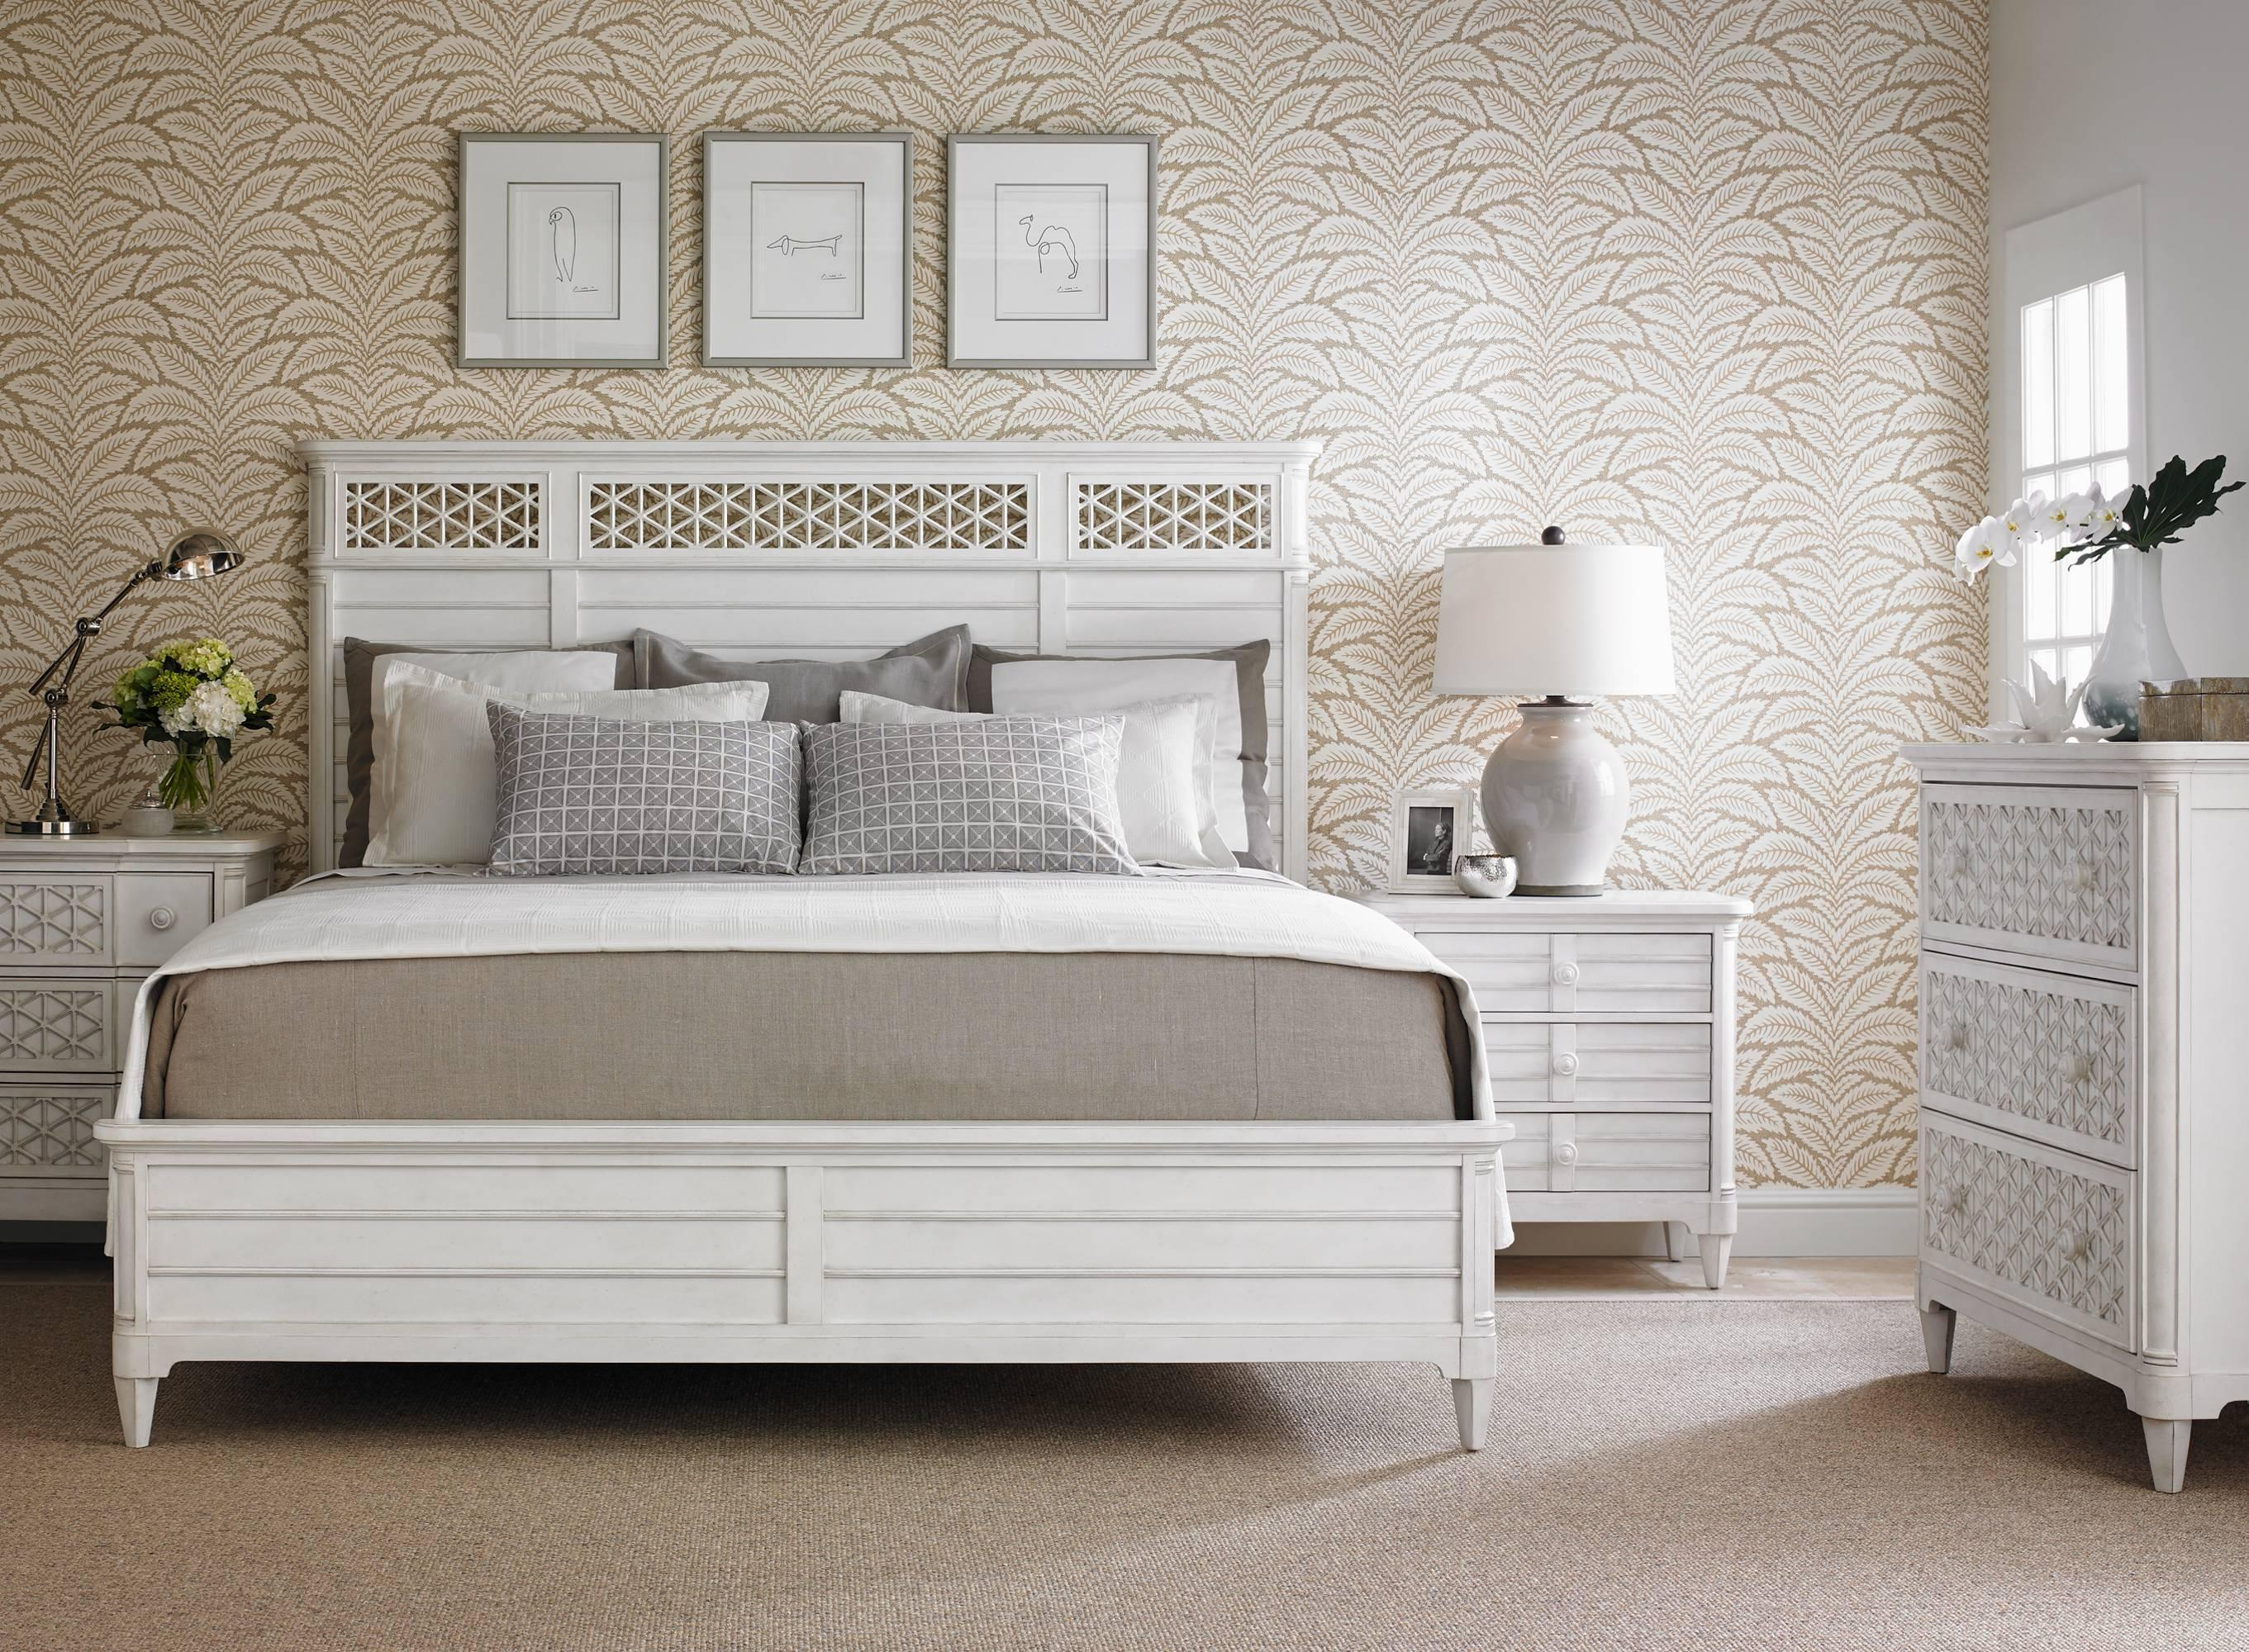 Stanley Furniture Cypress Grove  California King Bedroom Group - Item Number: 451-23 CK Bedroom Group 1